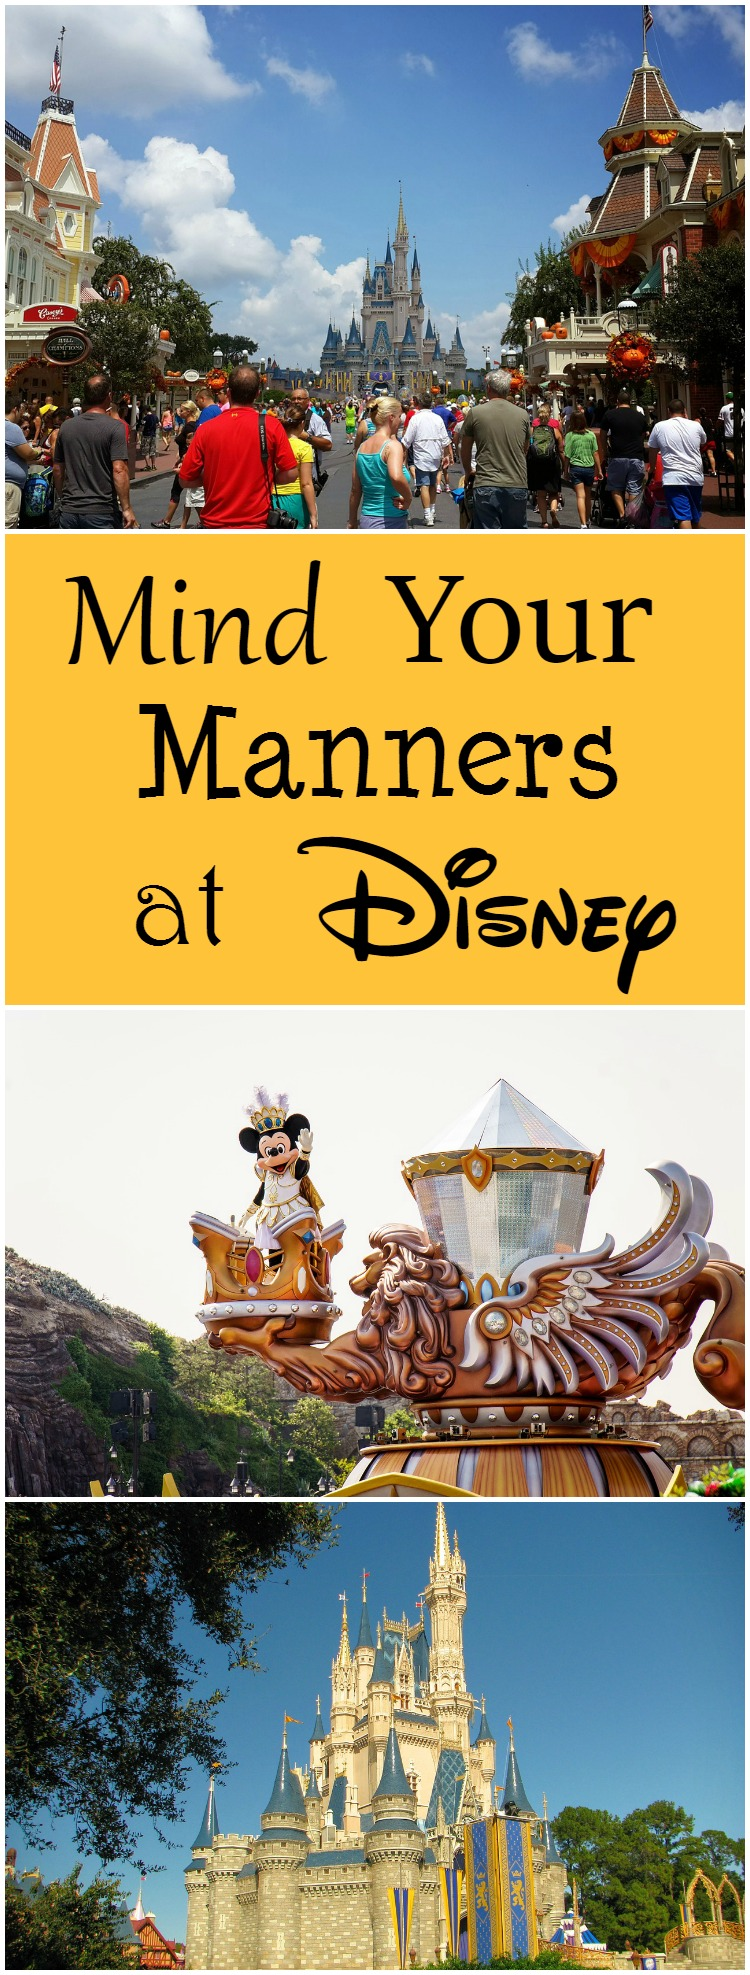 Disney is a Magical Place So It's Important to Mind Your Manners While at Disney